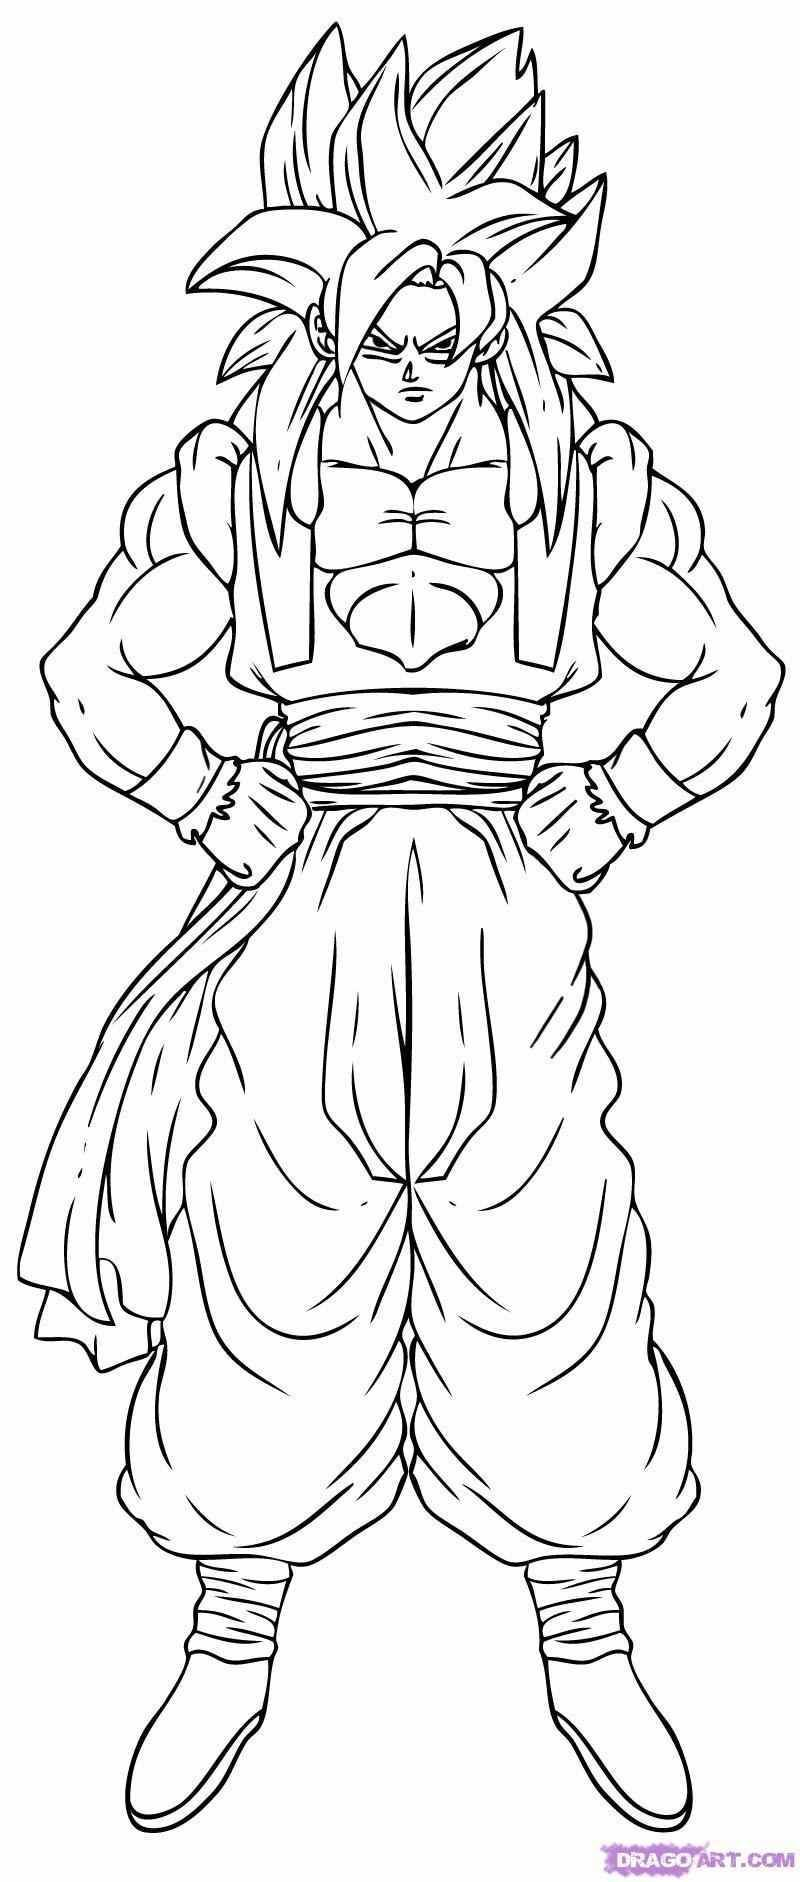 Dragon Ball Z Coloring Pages Printable Your Kids Will Love